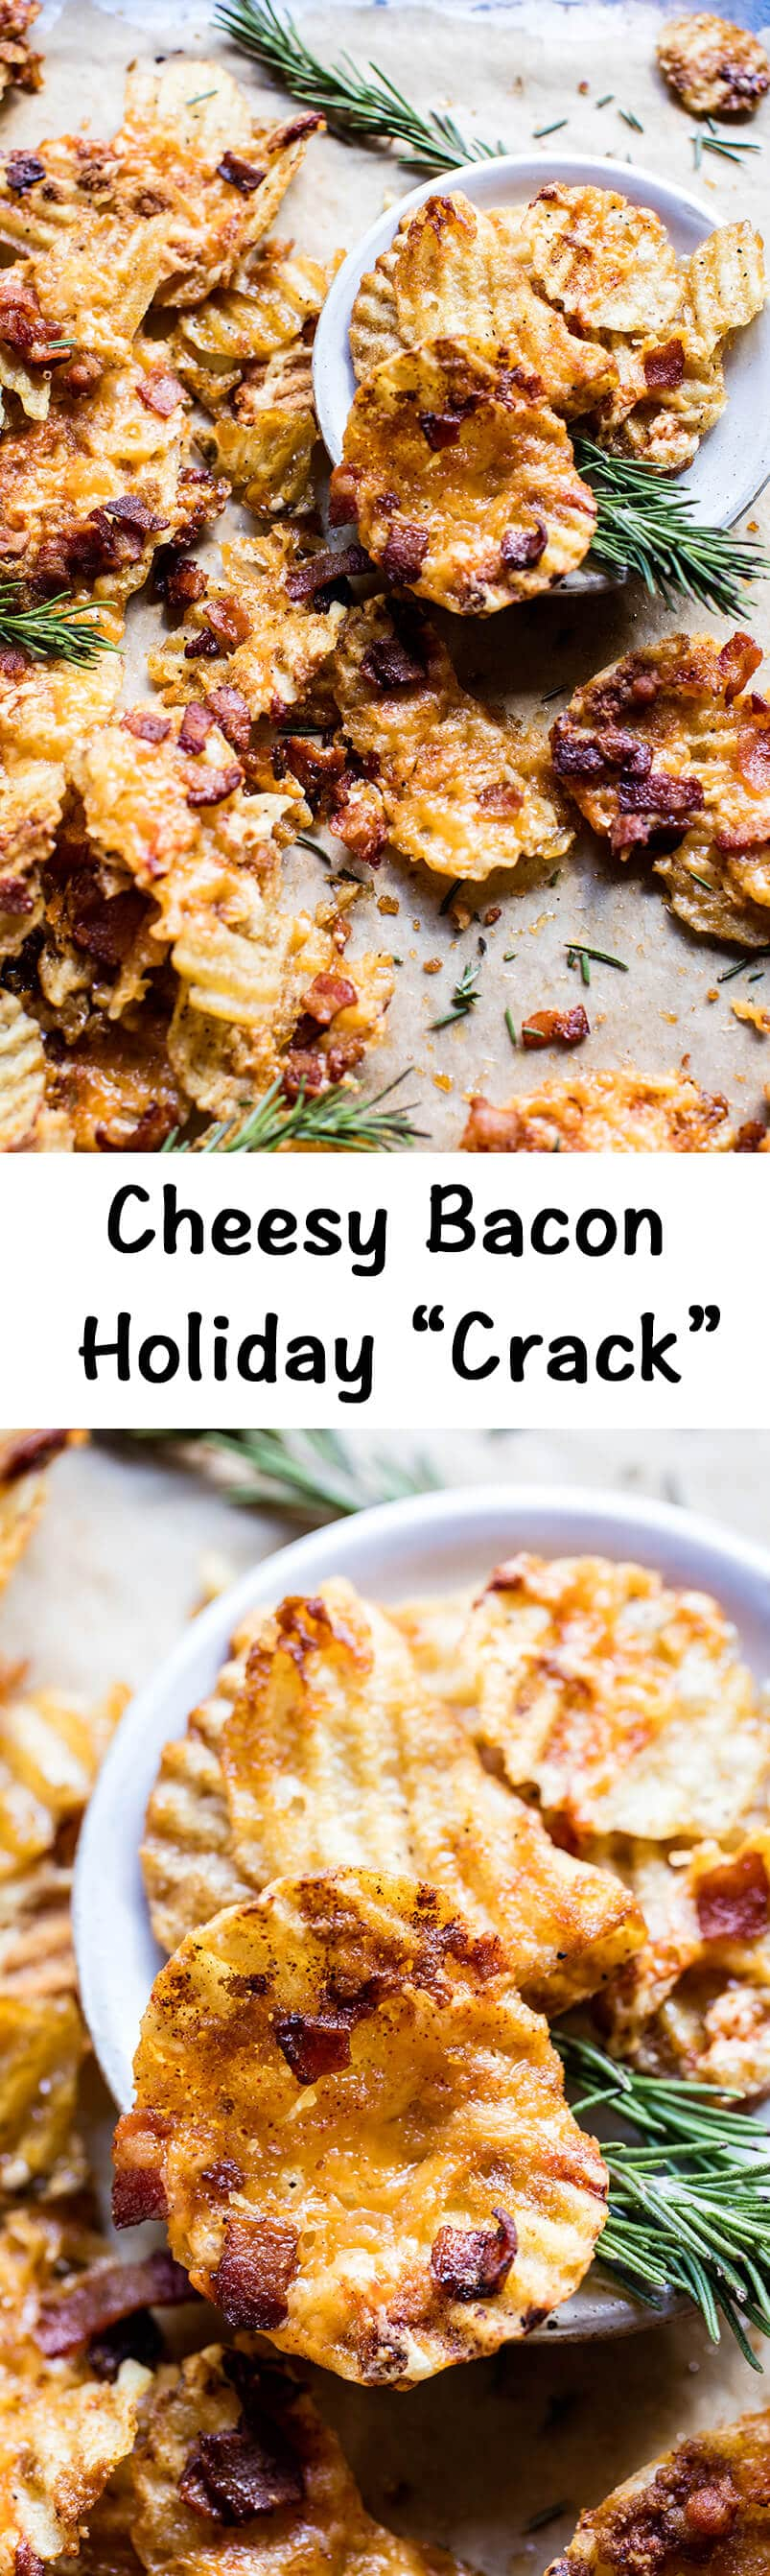 Cheesy Bacon Holiday Crack | halfbakedharvest.com @hbharvest